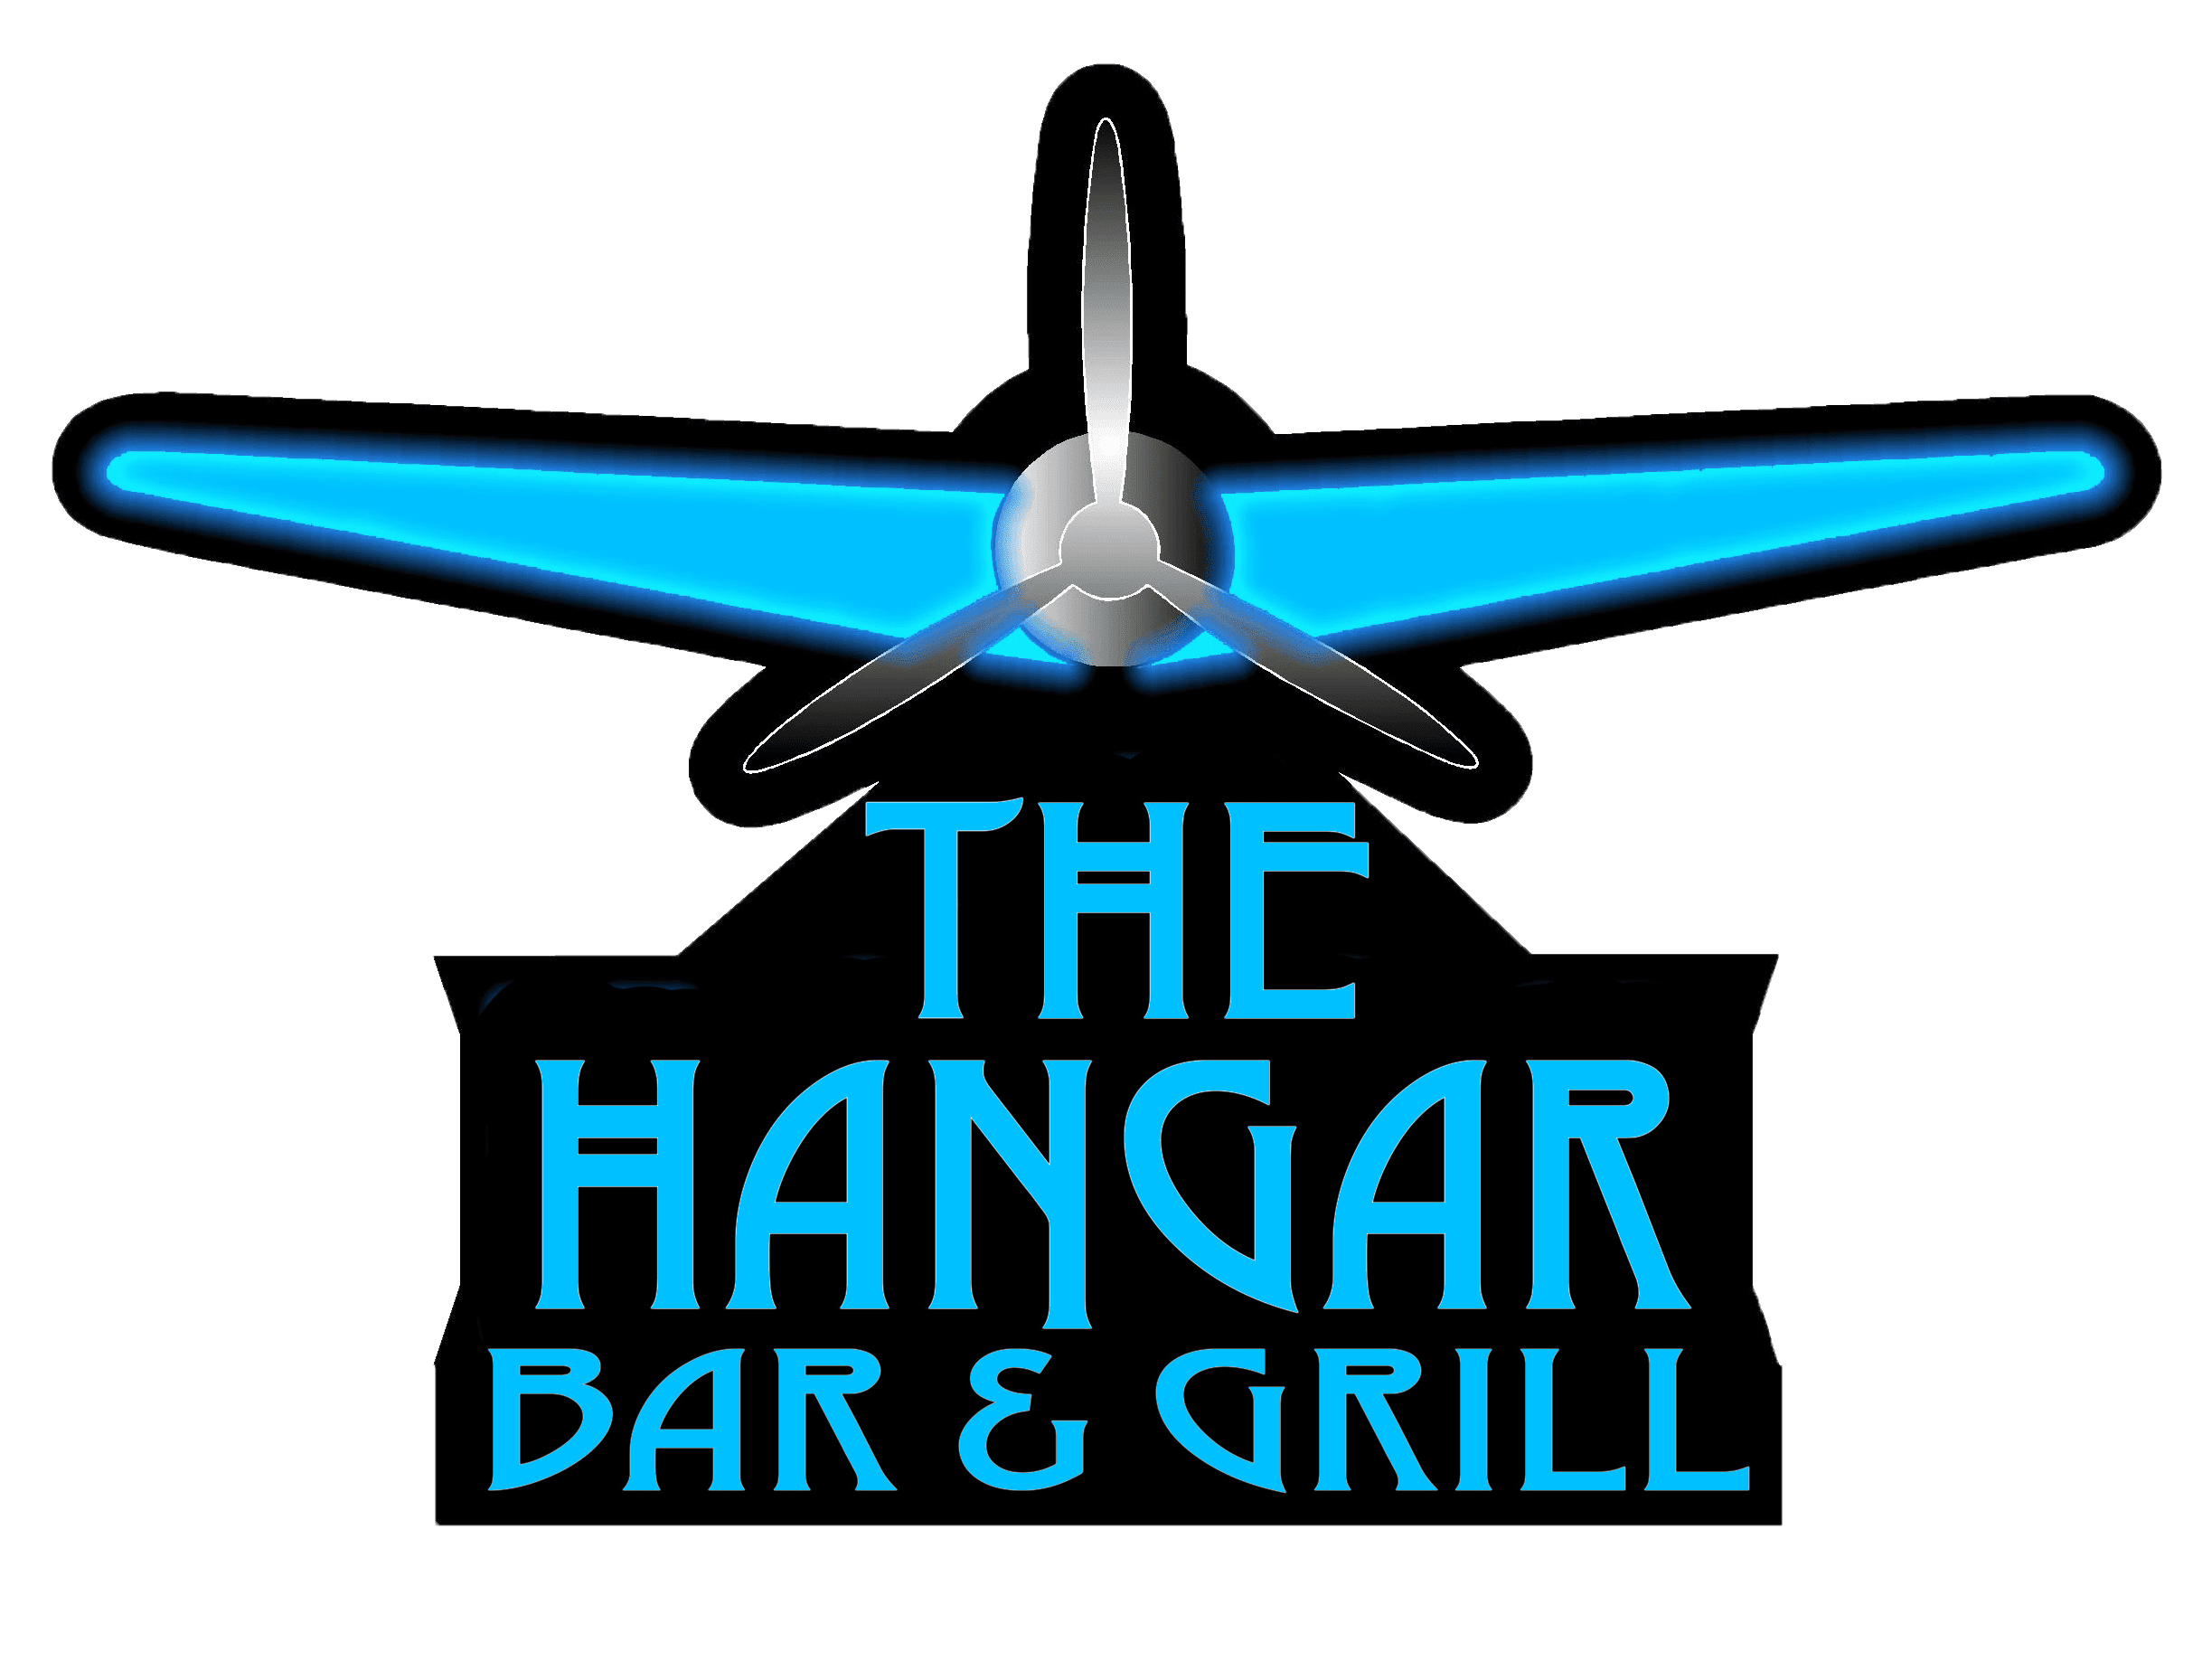 the hangar logo